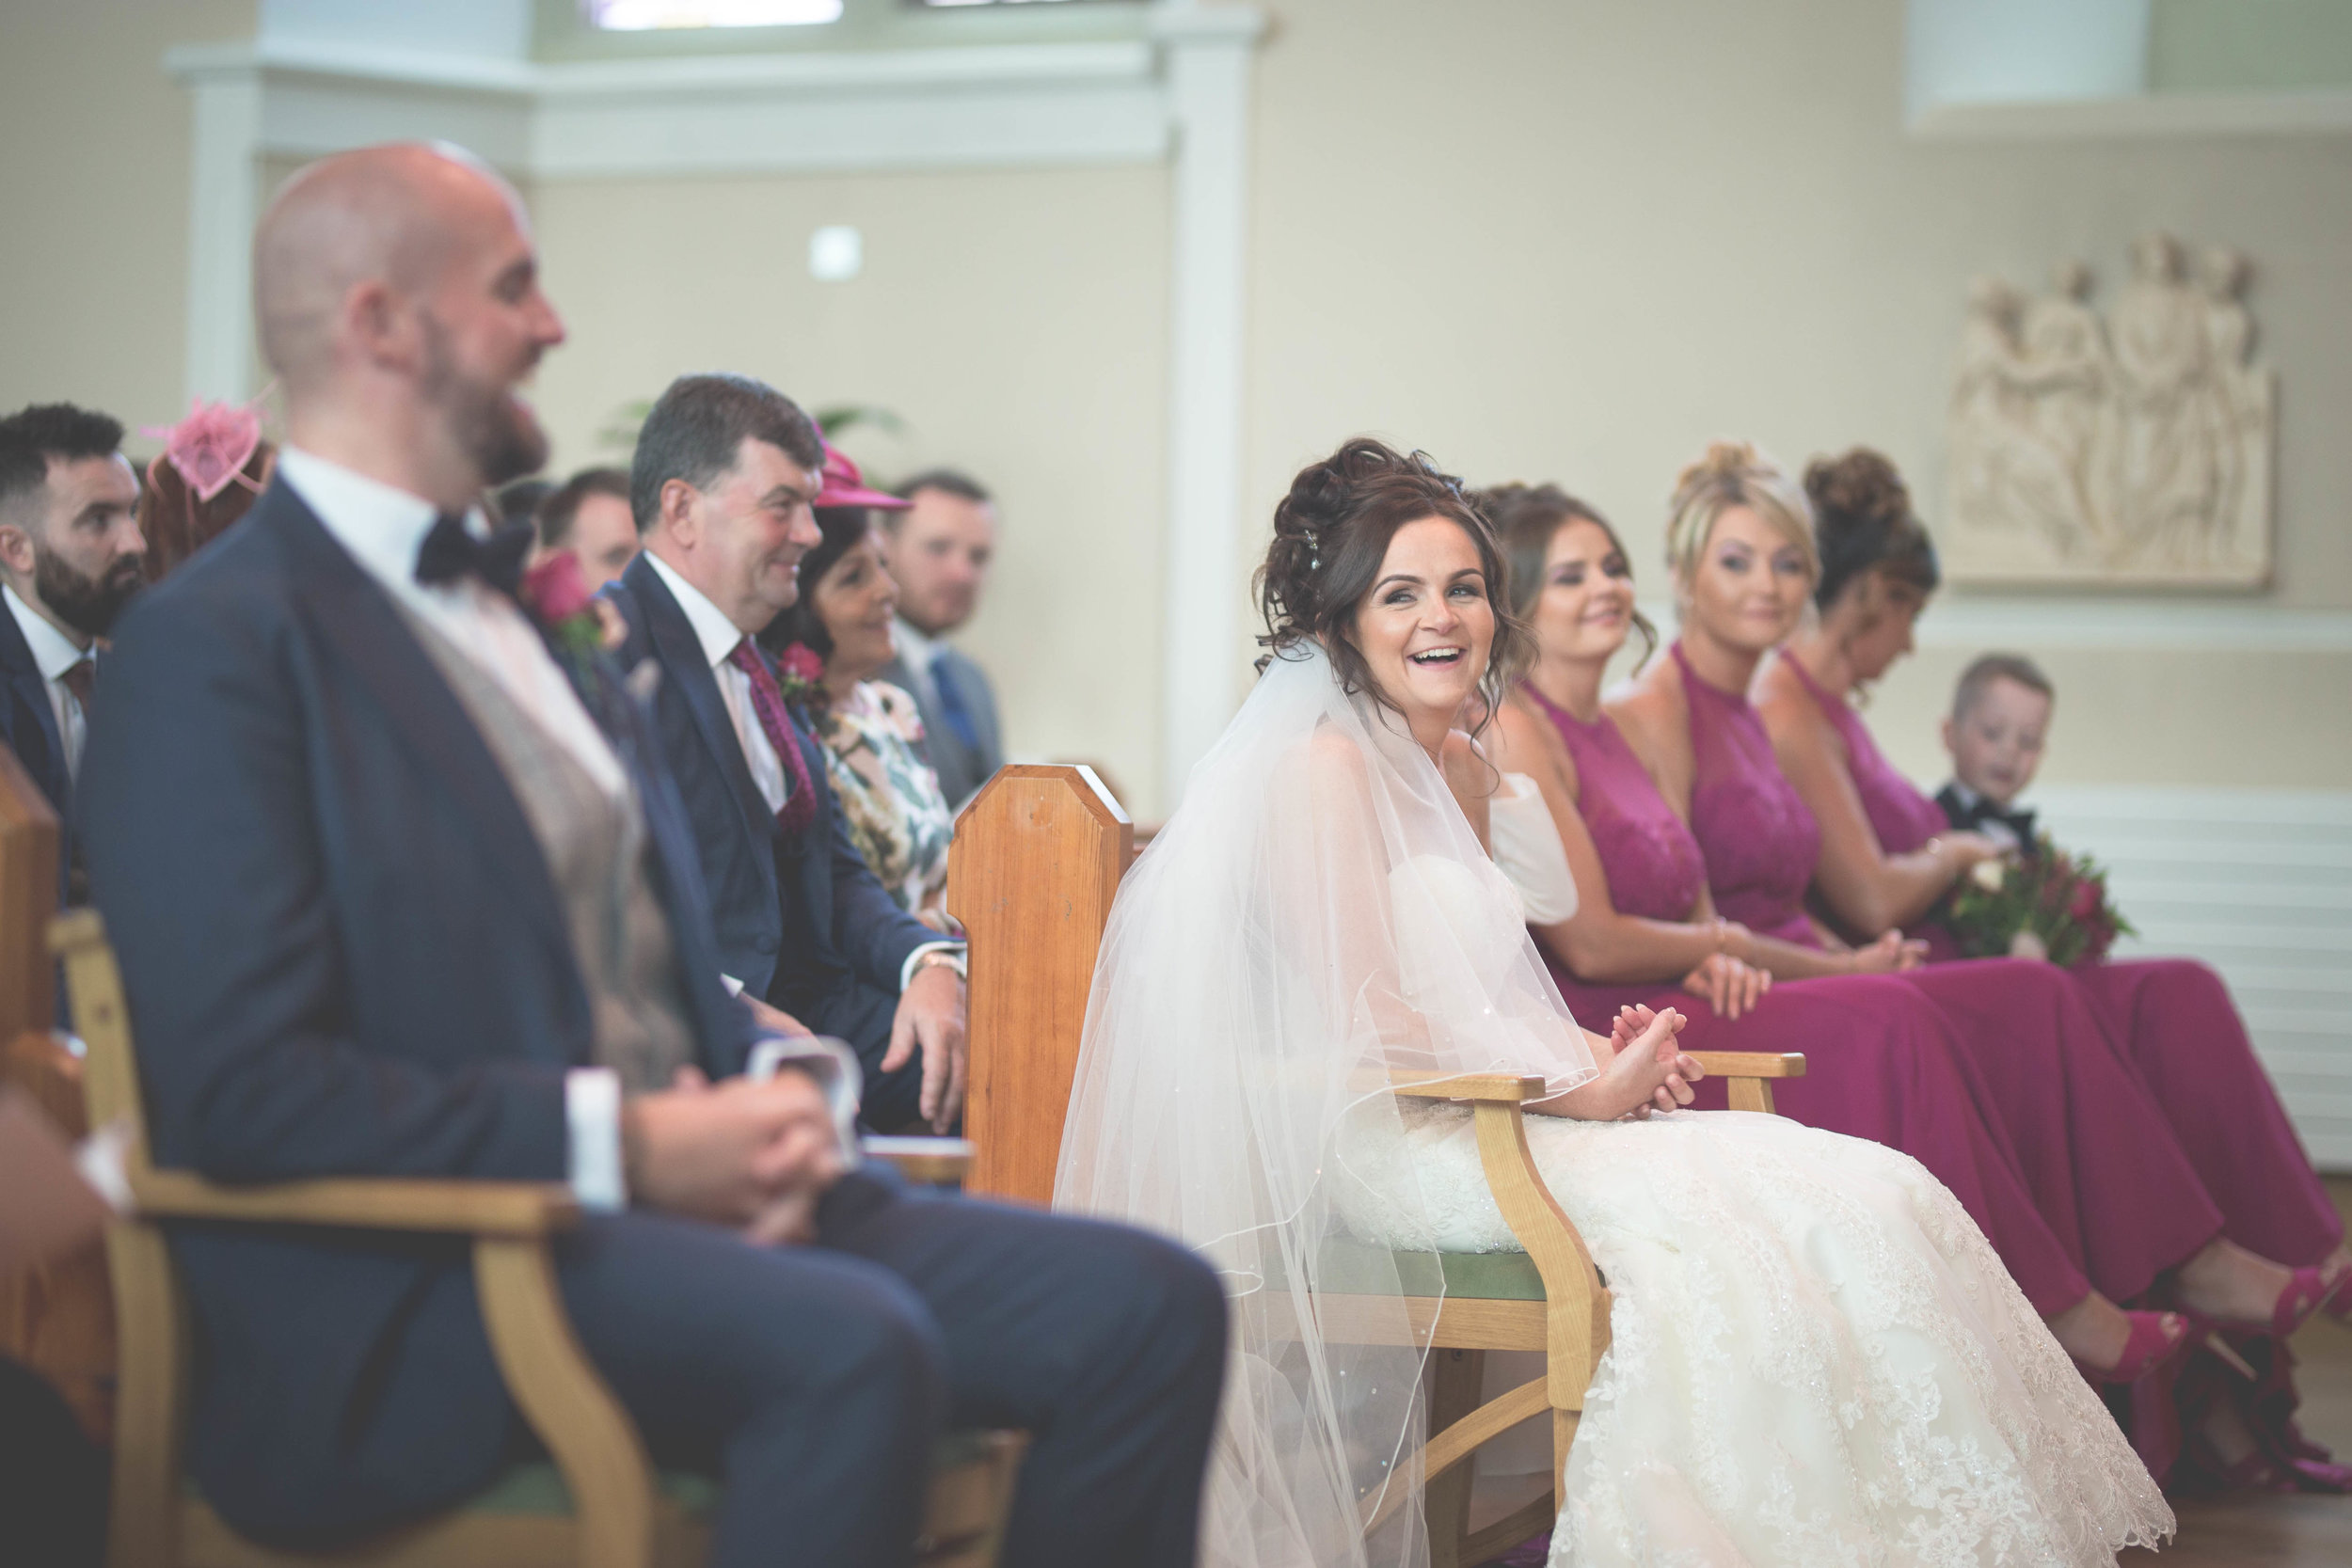 Northern Ireland Wedding Photographer | Brian McEwan Photography | Affordable Wedding Photography Throughout Antrim Down Armagh Tyrone Londonderry Derry Down Fermanagh -39.jpg